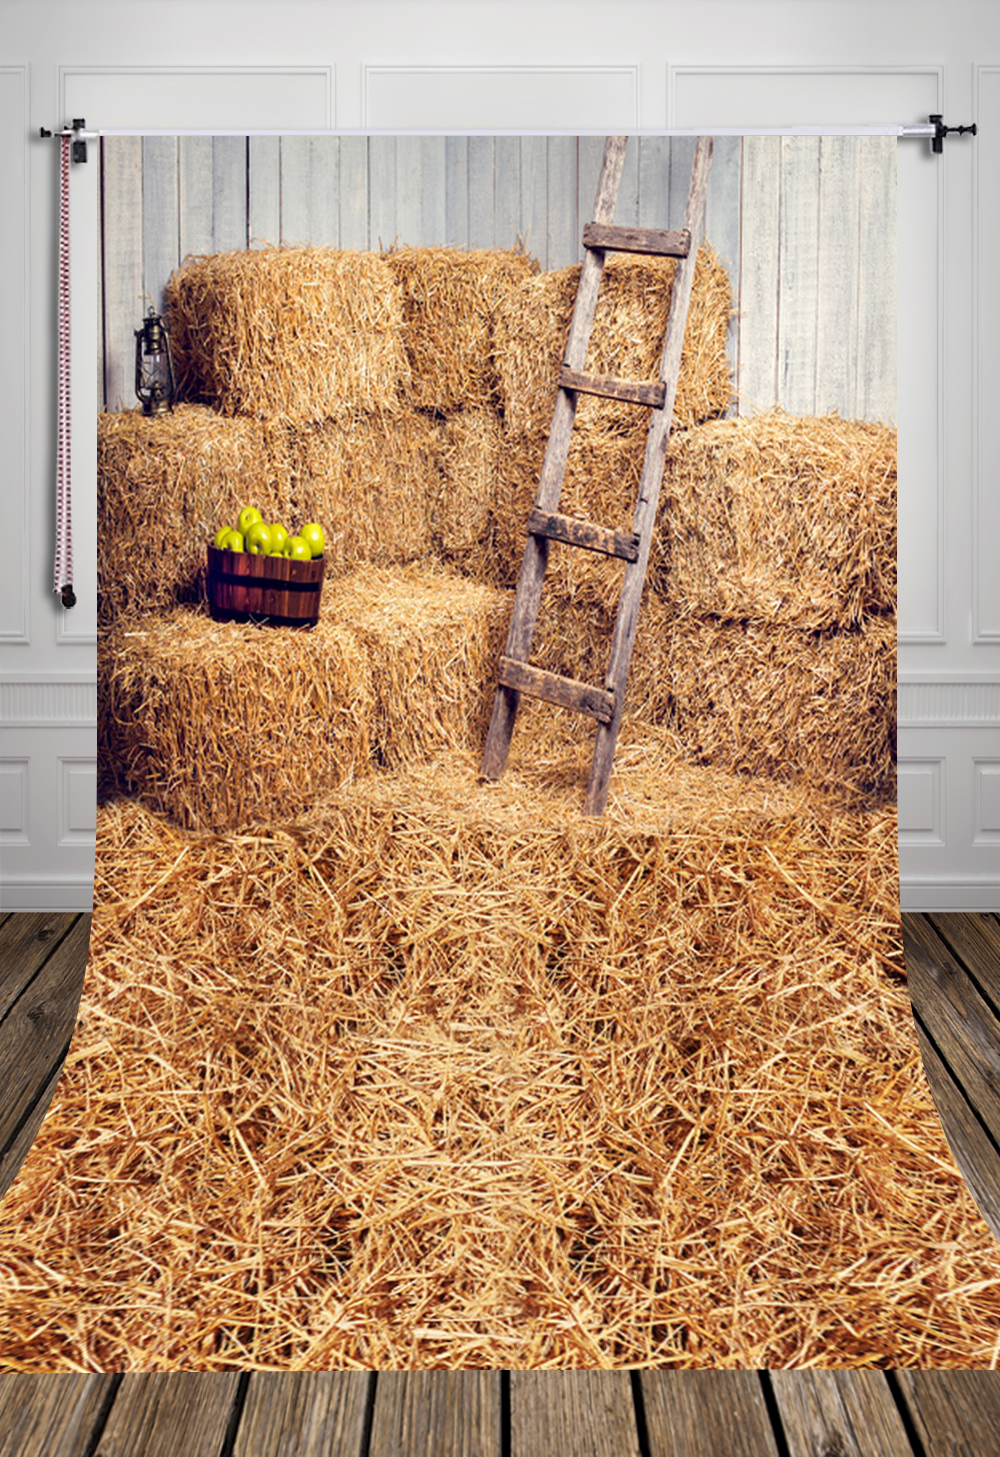 D-6160 Haystack Rick and Wood Barn Photography  Newborn Backdrop background newborn wallpaper flooring цена 2016